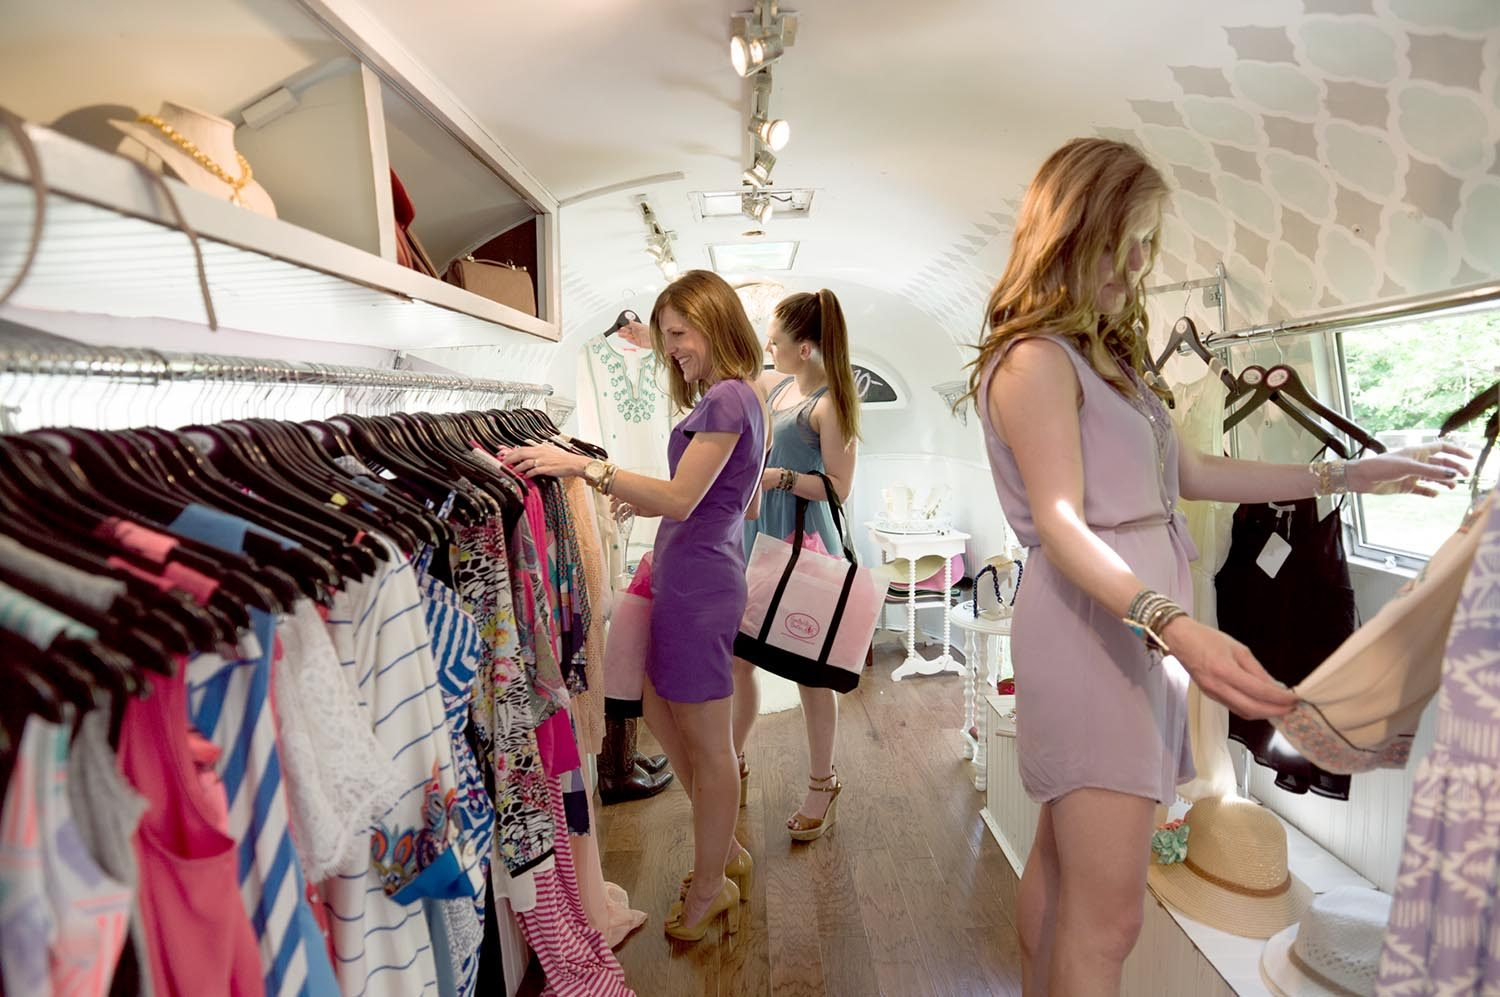 7 Bombshell Benefits You Get From Shopping At Boutiques Cover Image Credit  Traveling Chic Boutique